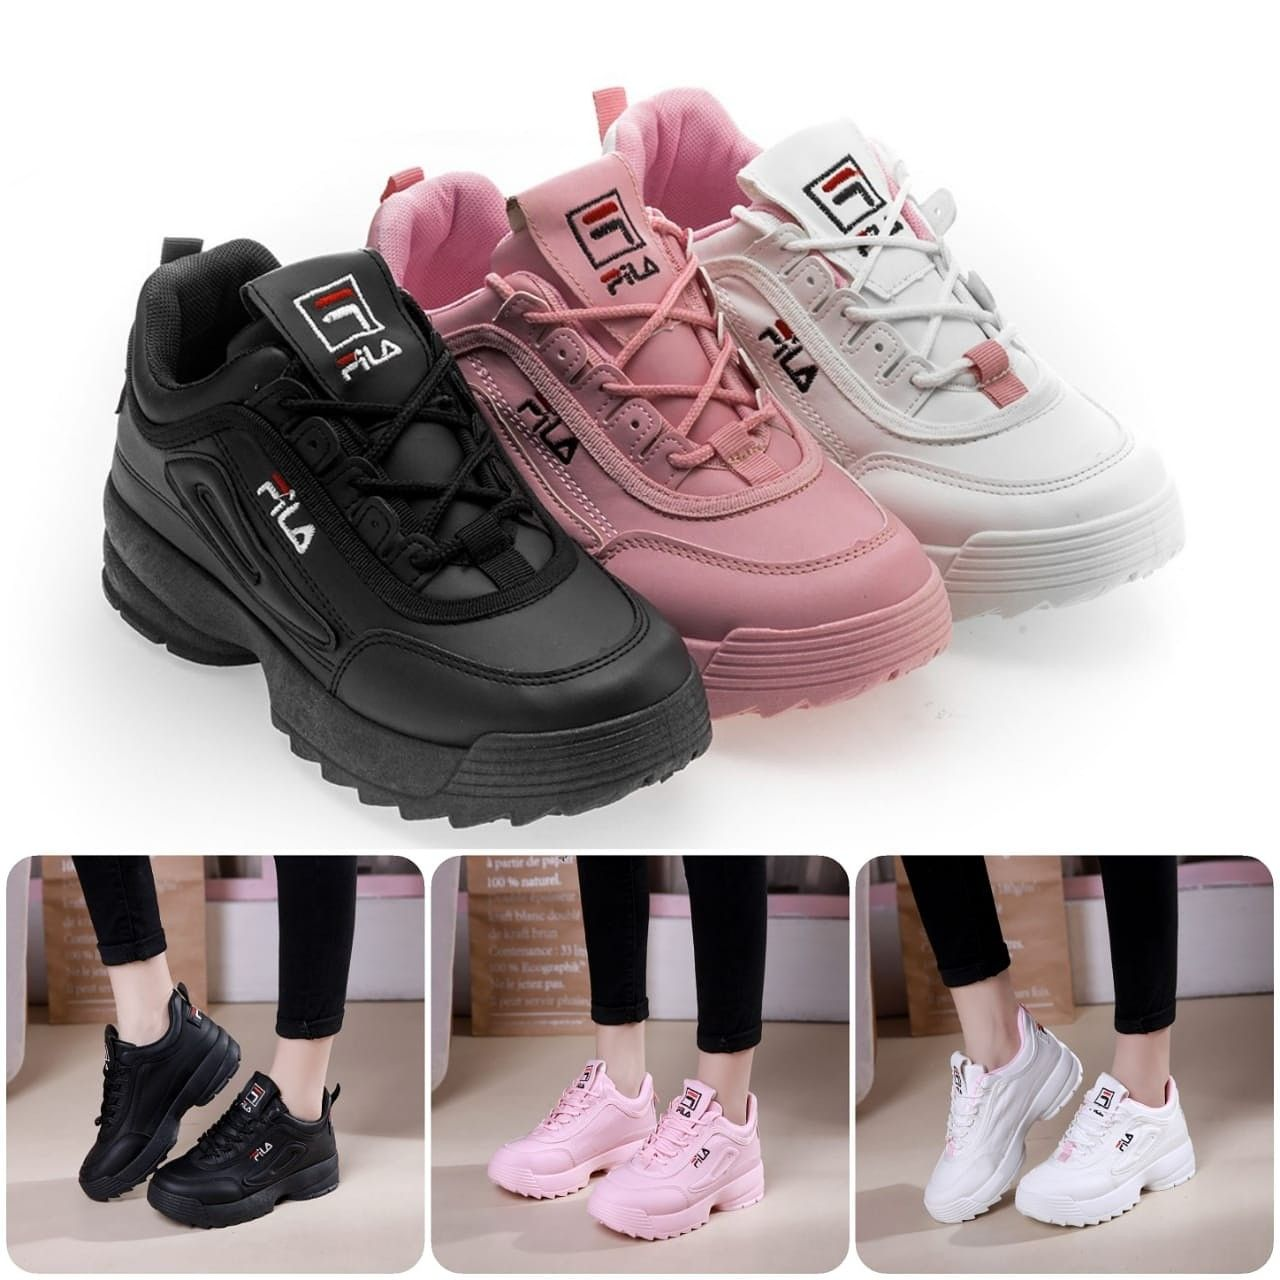 F I L A Disruptor Ii Series Gm03 Colours Black Pink White